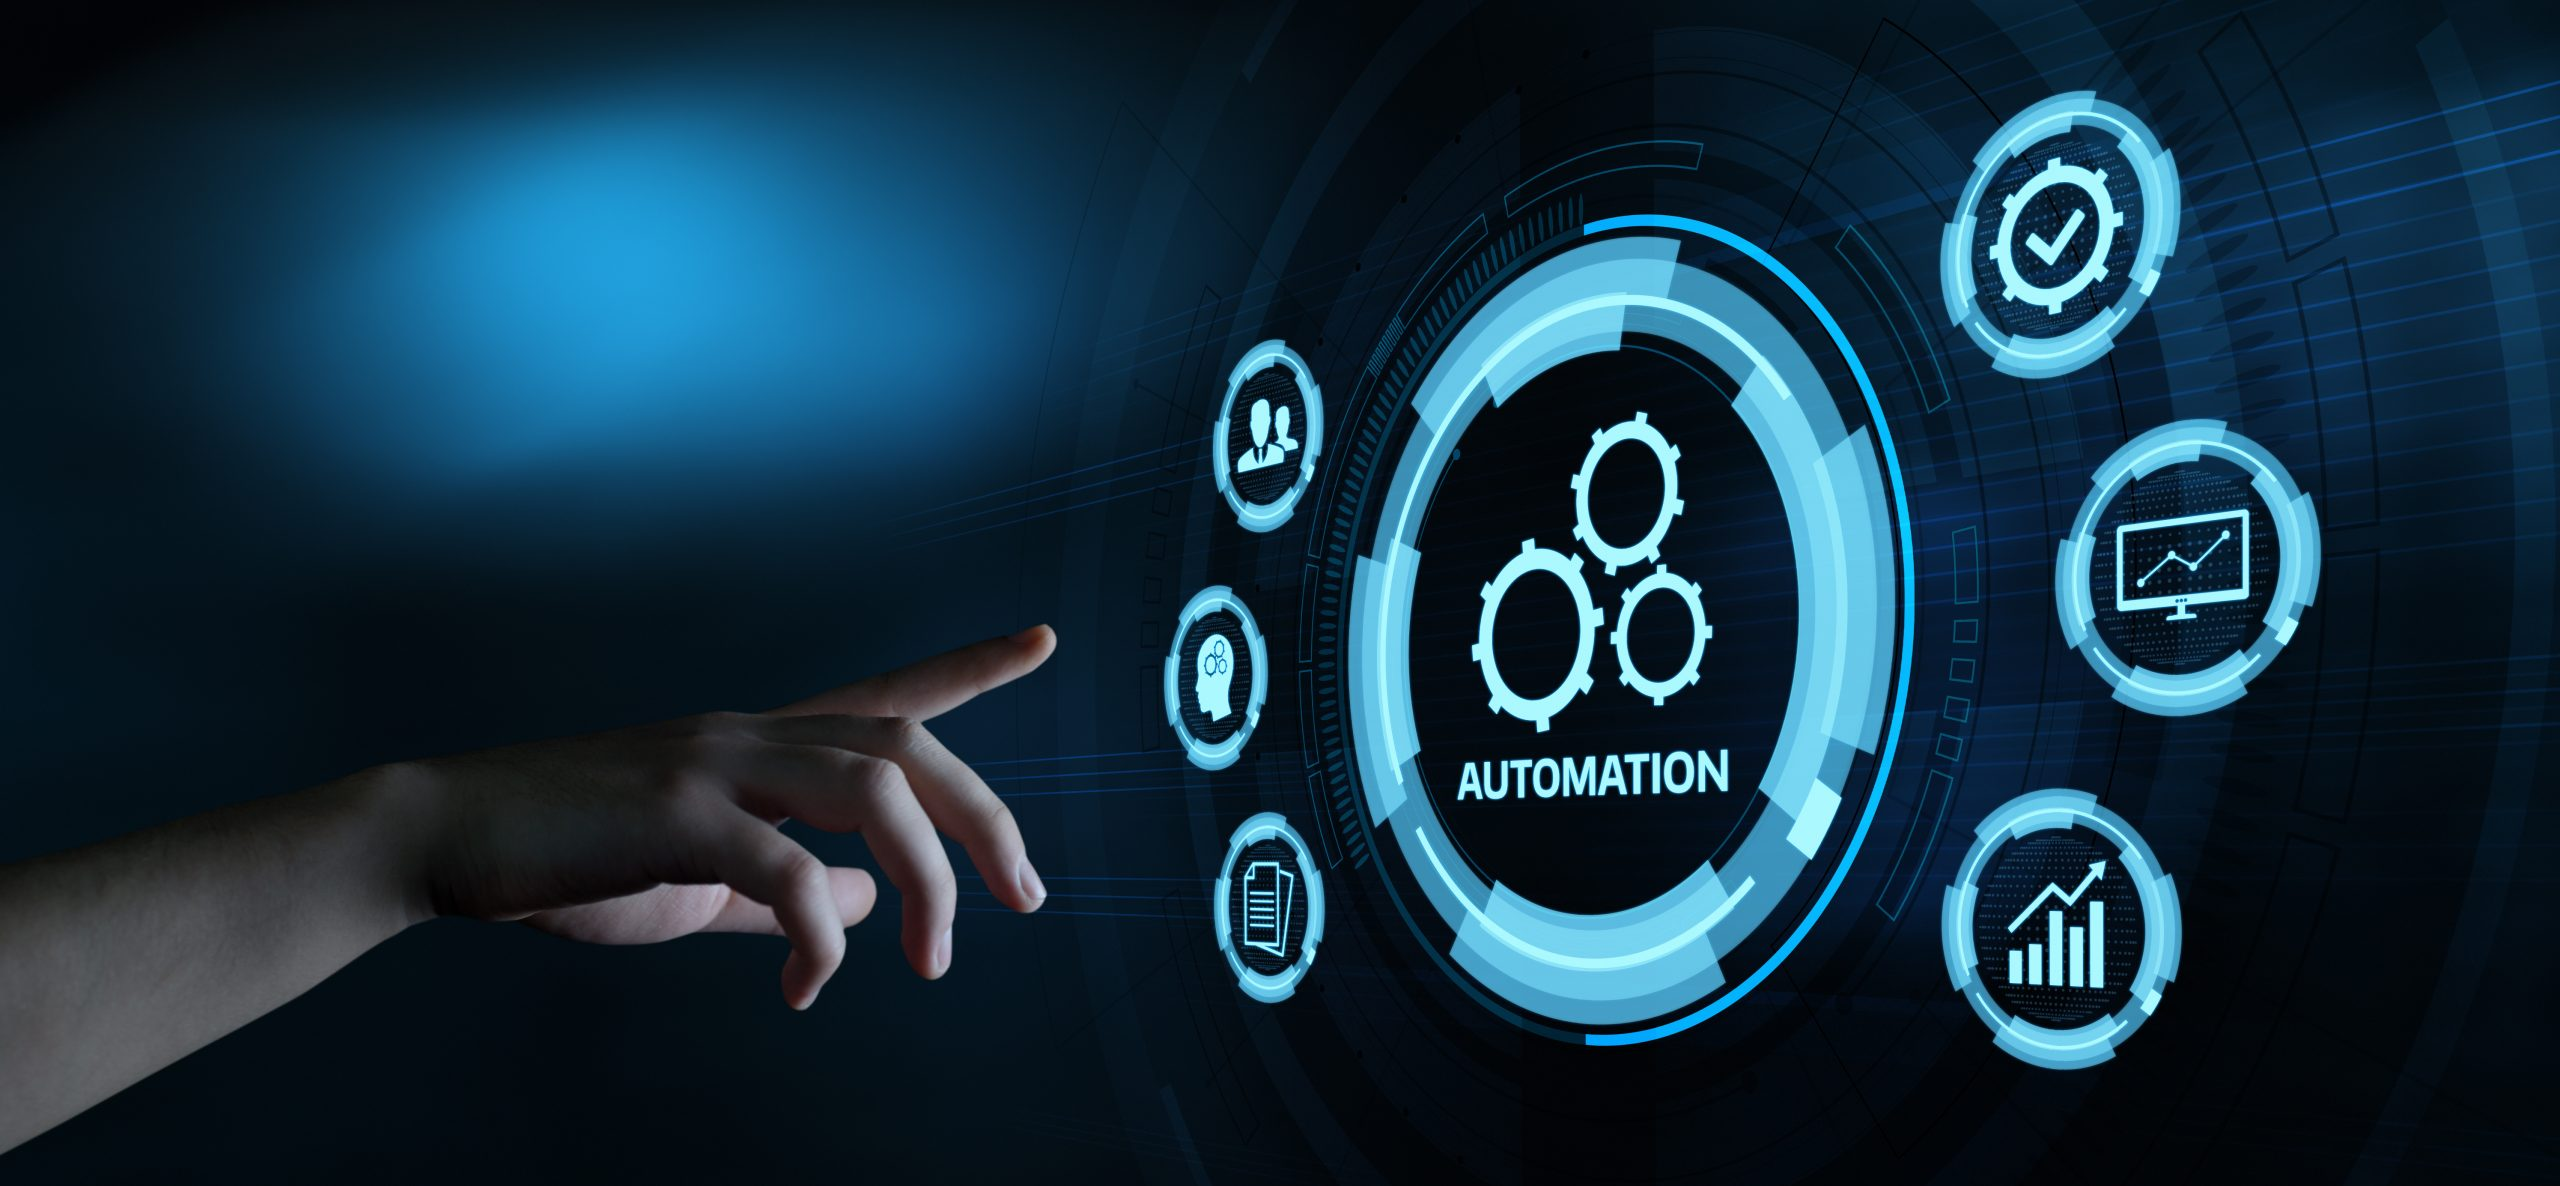 6 Ways Digital Workflow Automation Drives Business Growth